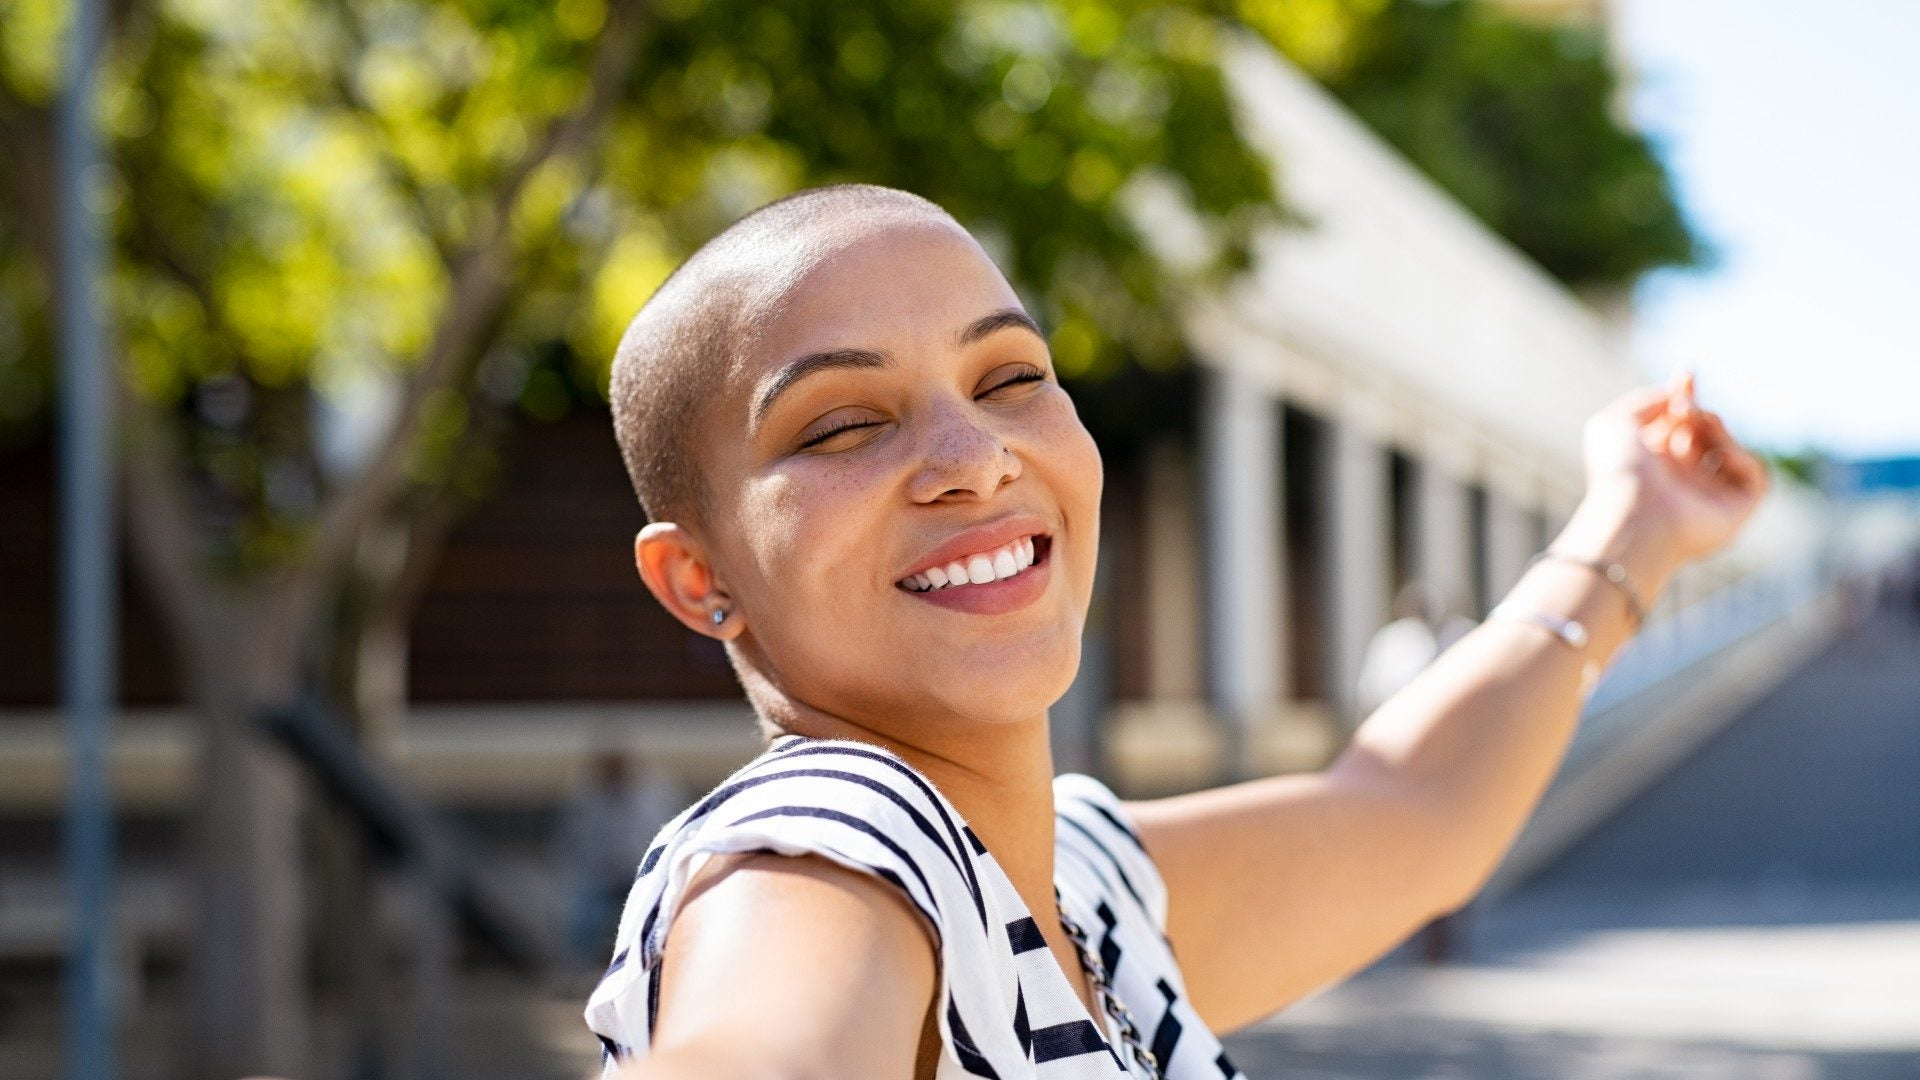 21 Bald Black Women That Make Us Want To Shave Our Heads